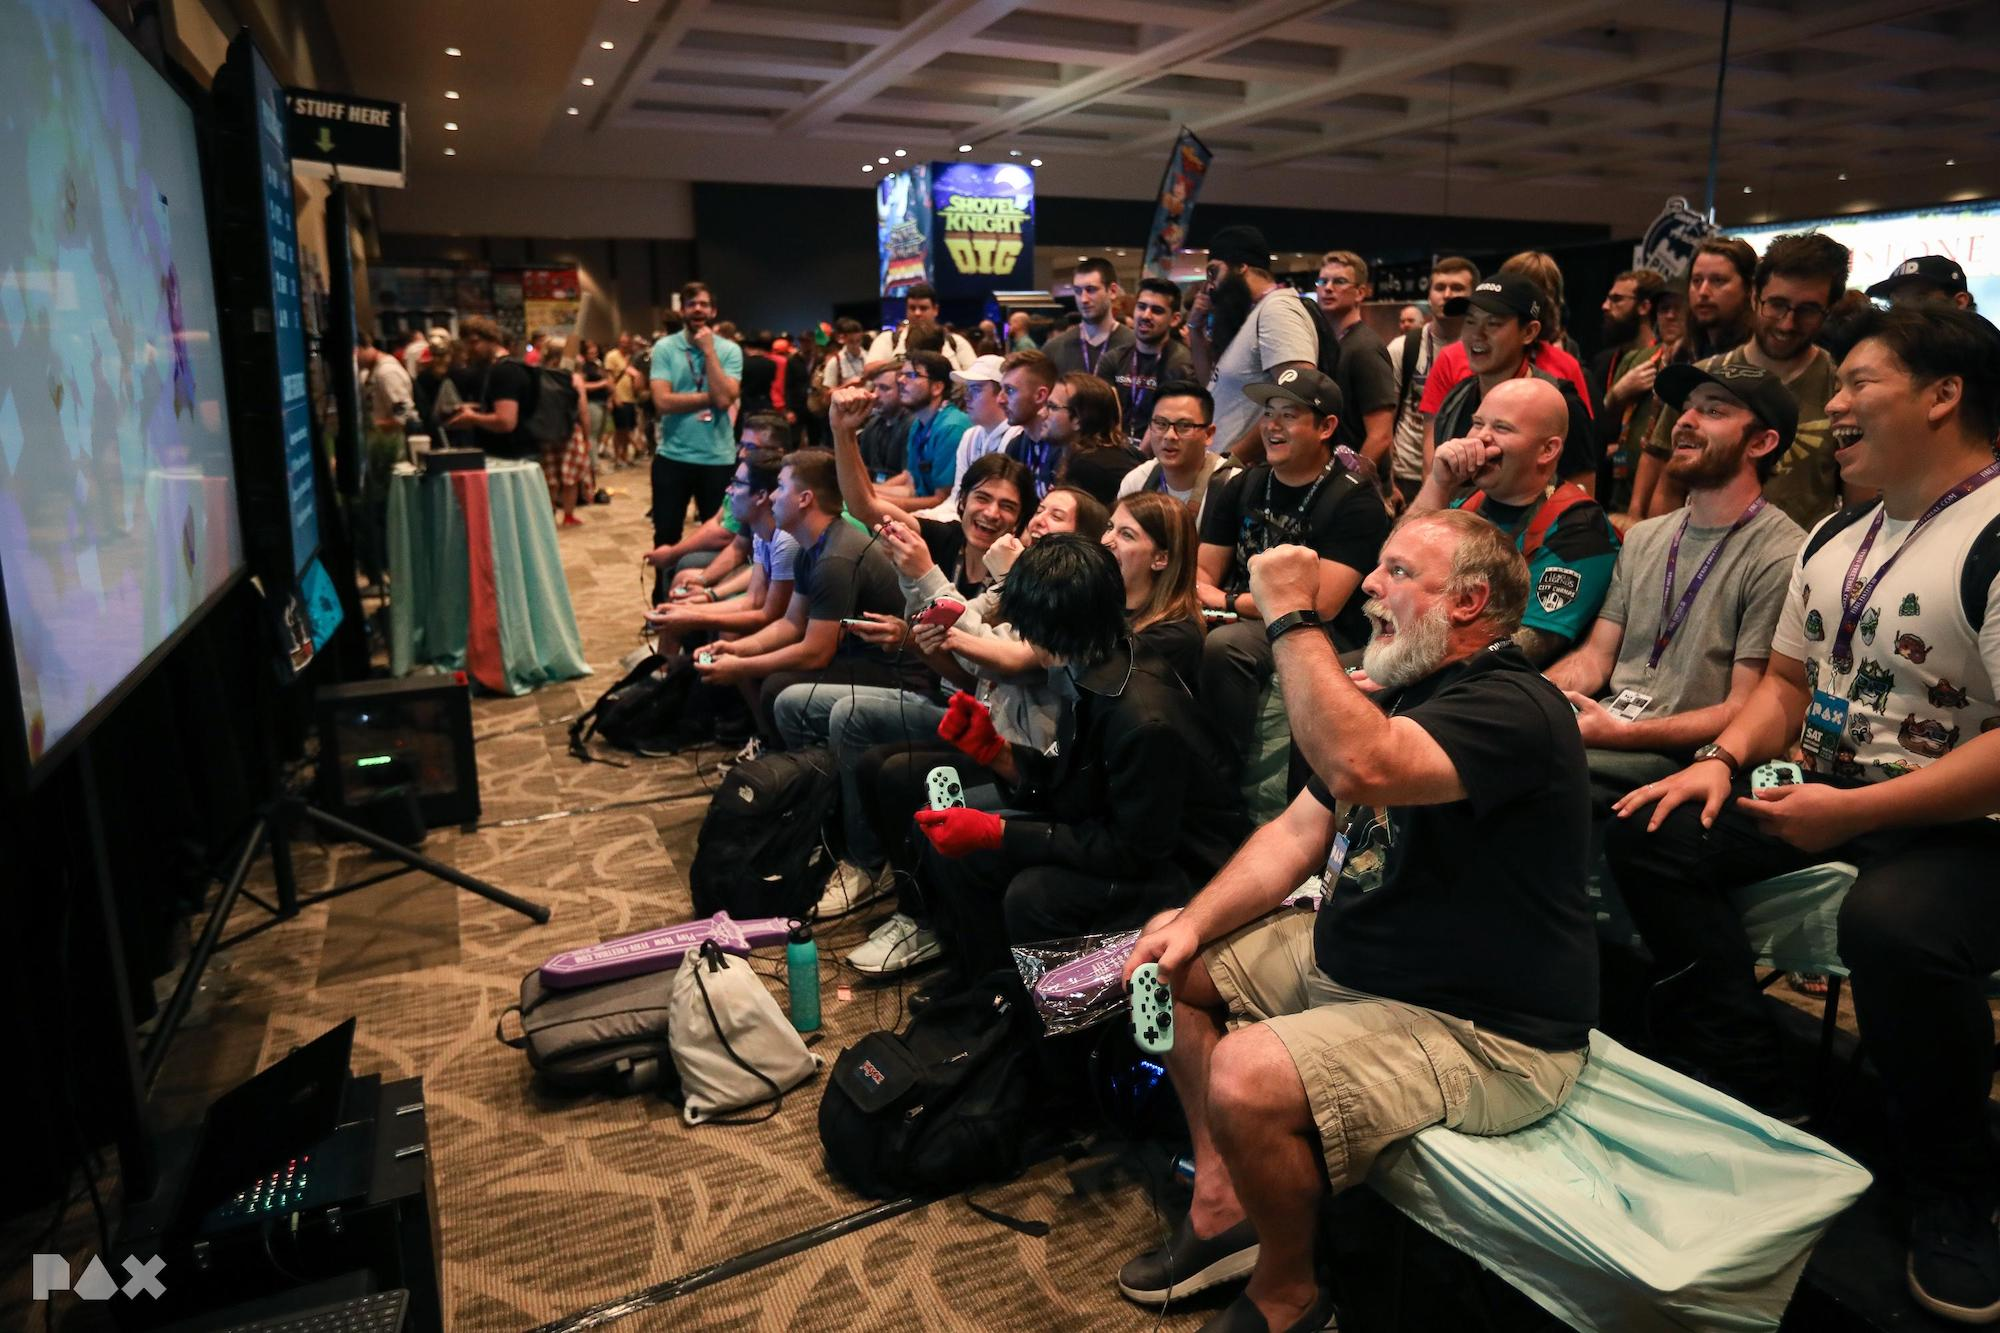 PAX with people: This year's Penny Arcade Expo in Seattle will be a live, in-person event